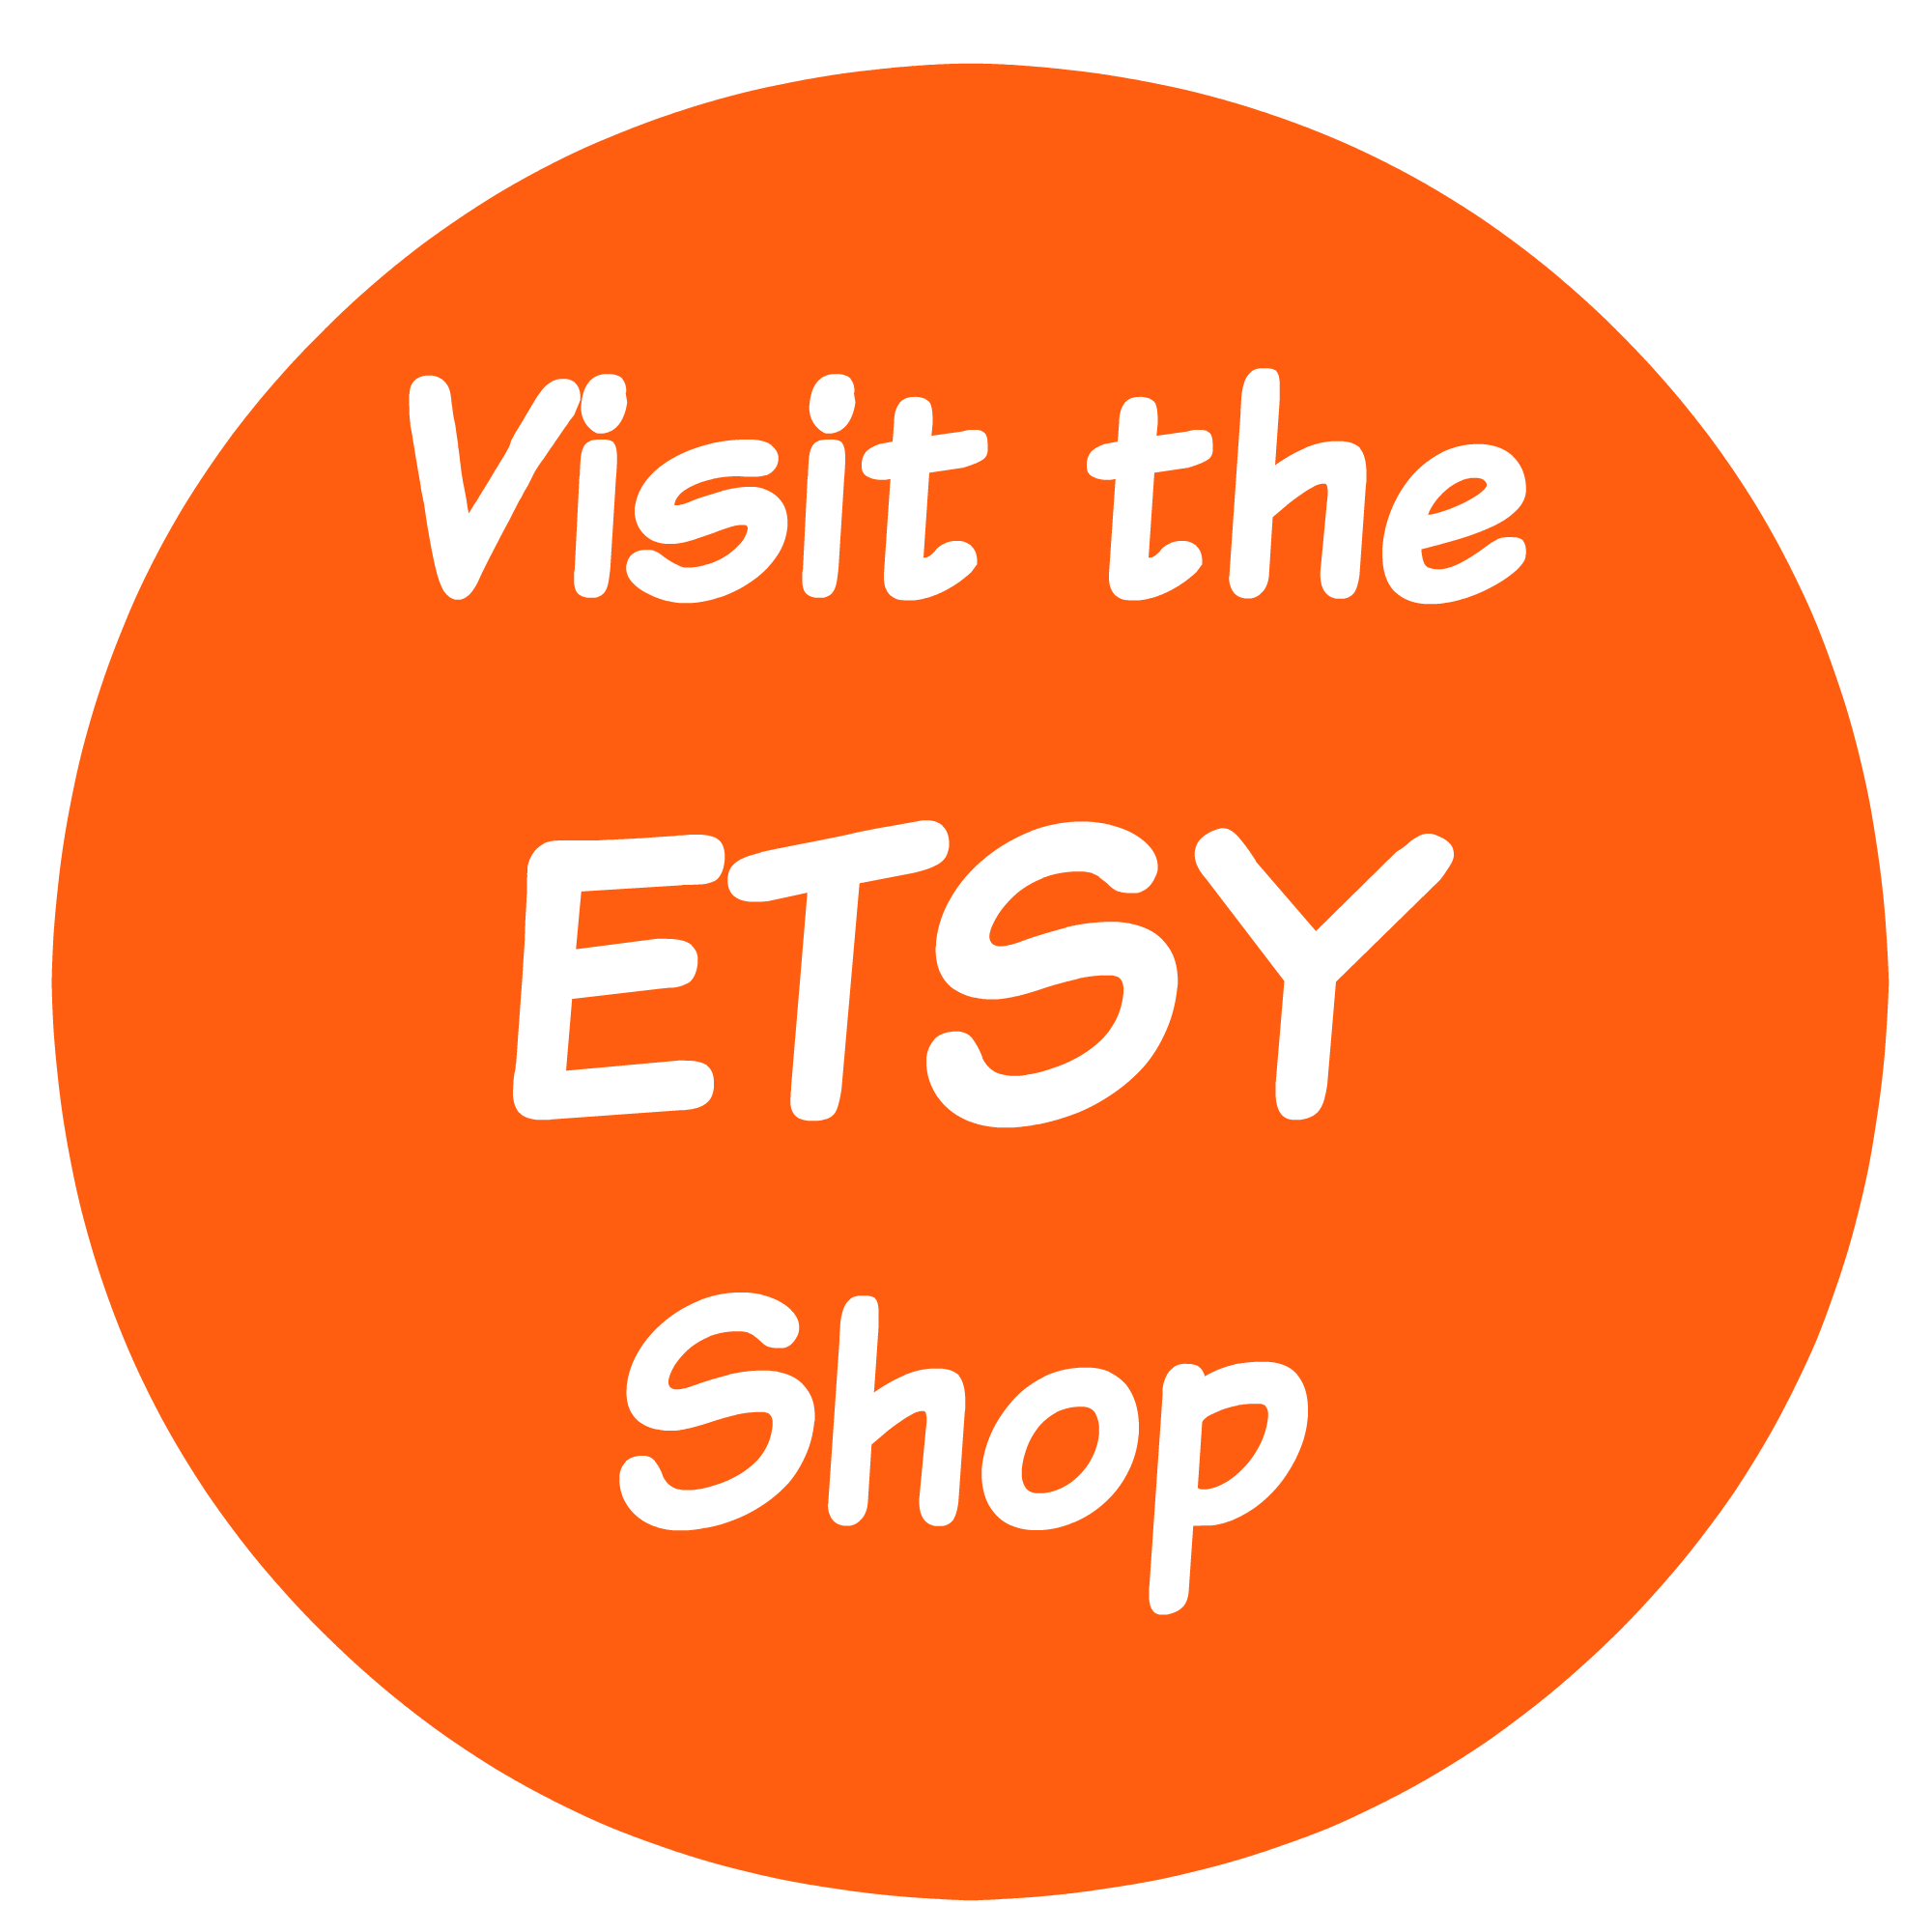 Etsy-2.png